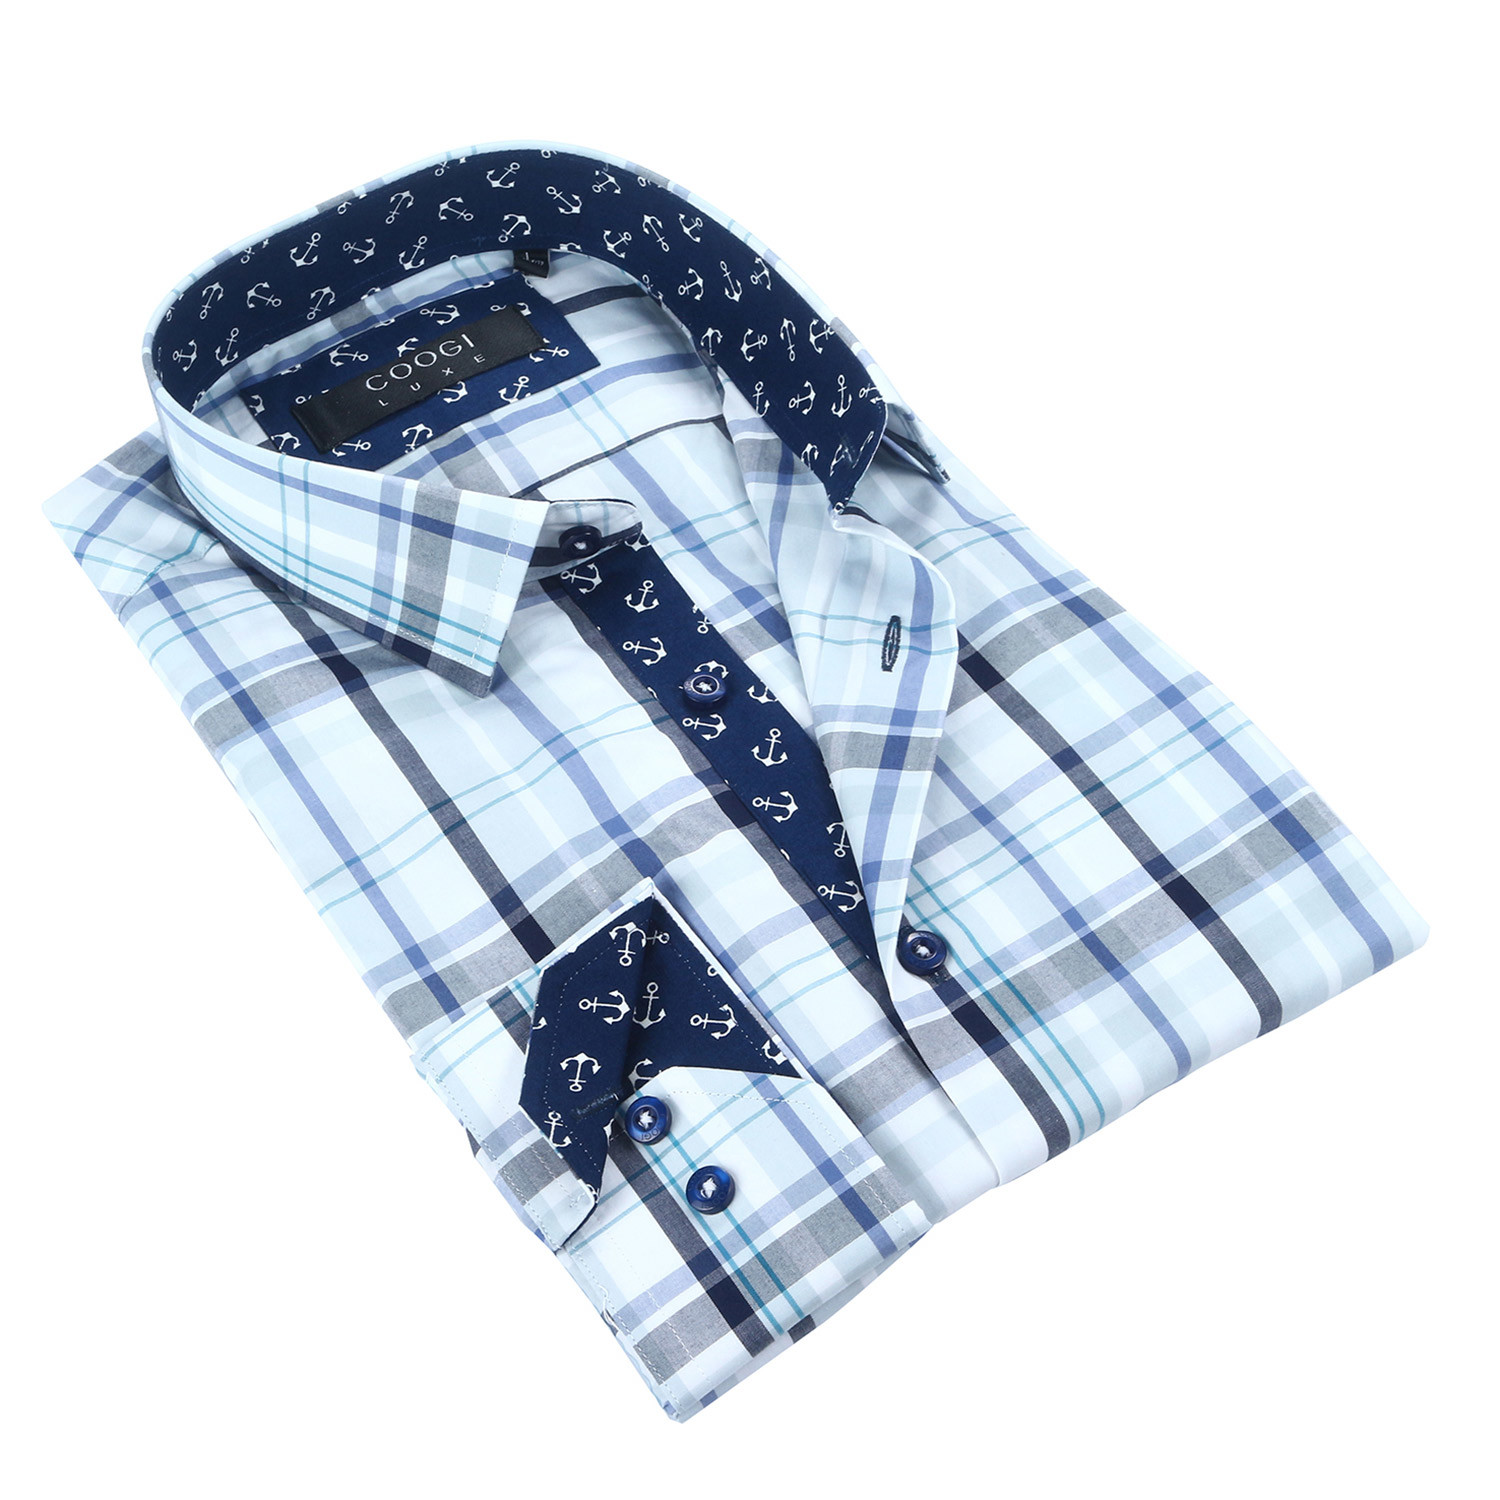 plaid anchor trim button up navy white s coogi. Black Bedroom Furniture Sets. Home Design Ideas